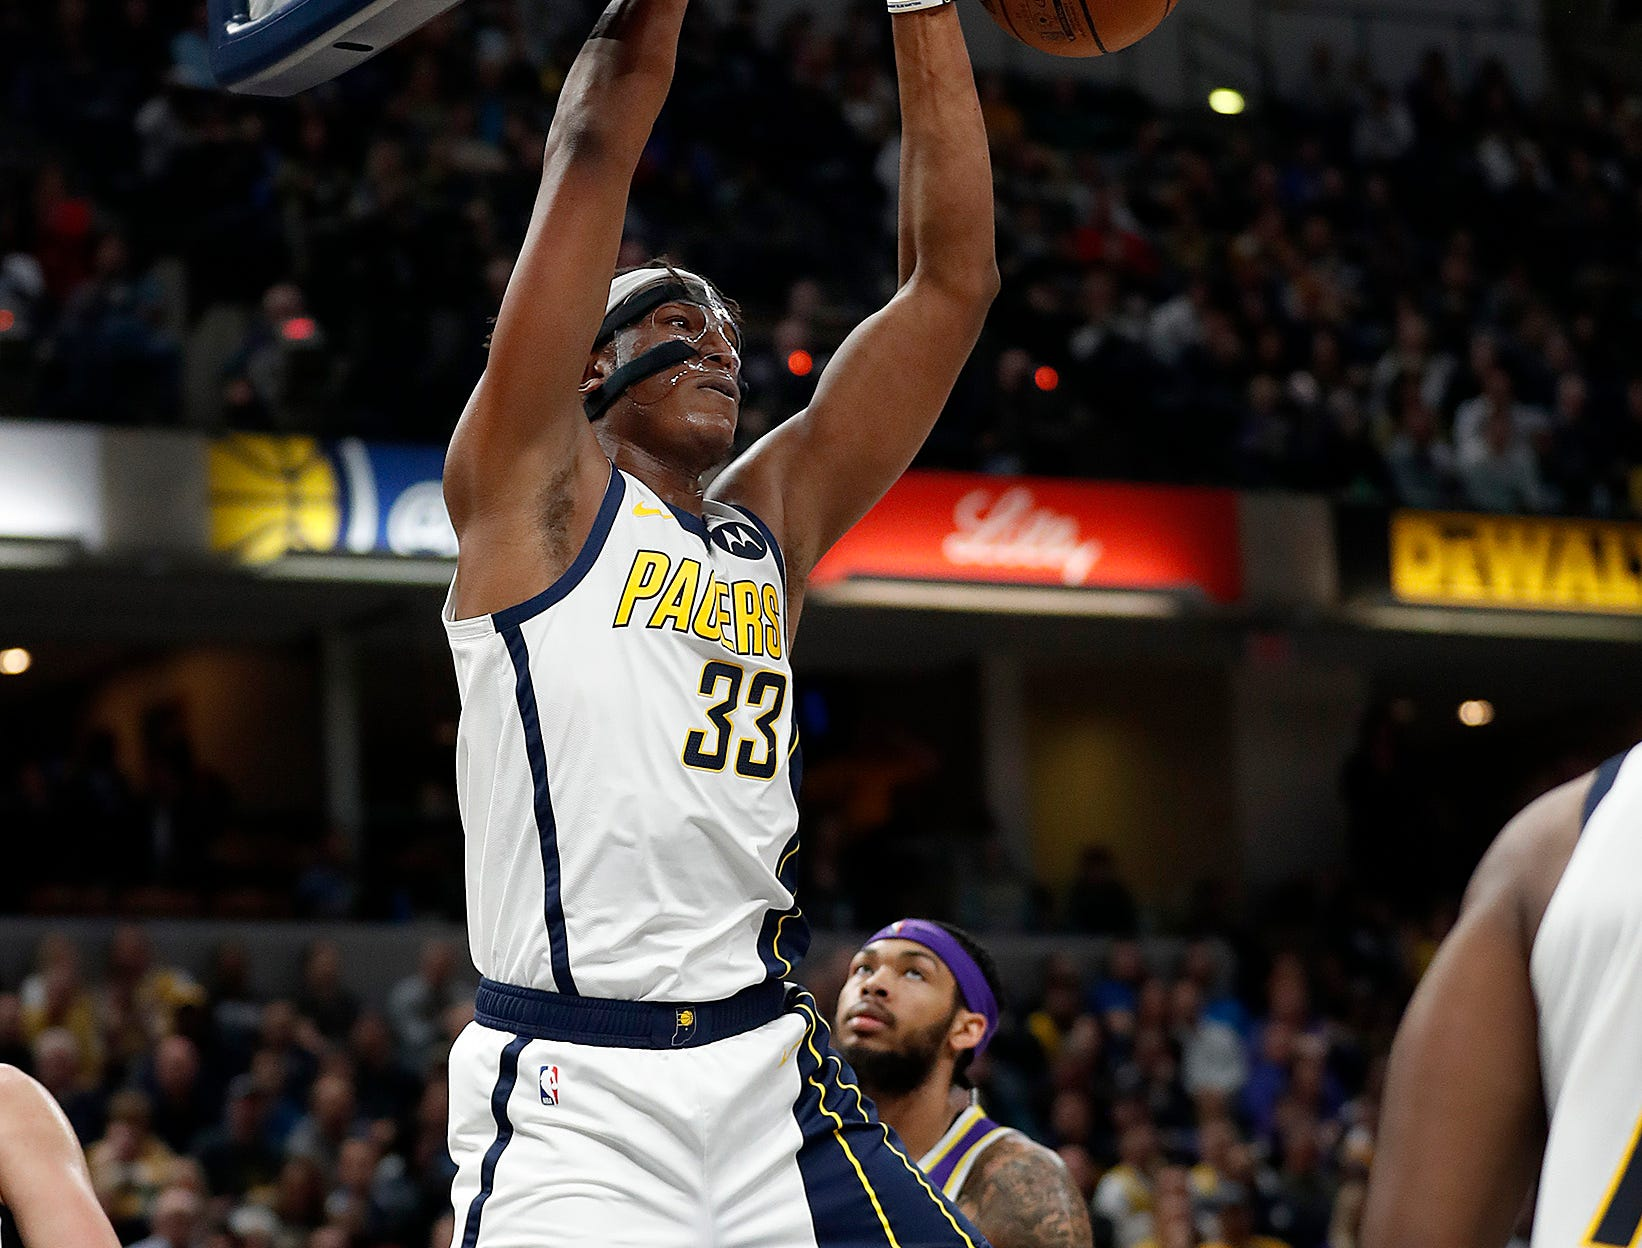 Indiana Pacers center Myles Turner (33) dunks the ball in the second half of their game at Bankers Life Fieldhouse on Tuesday, Feb. 5, 2019.